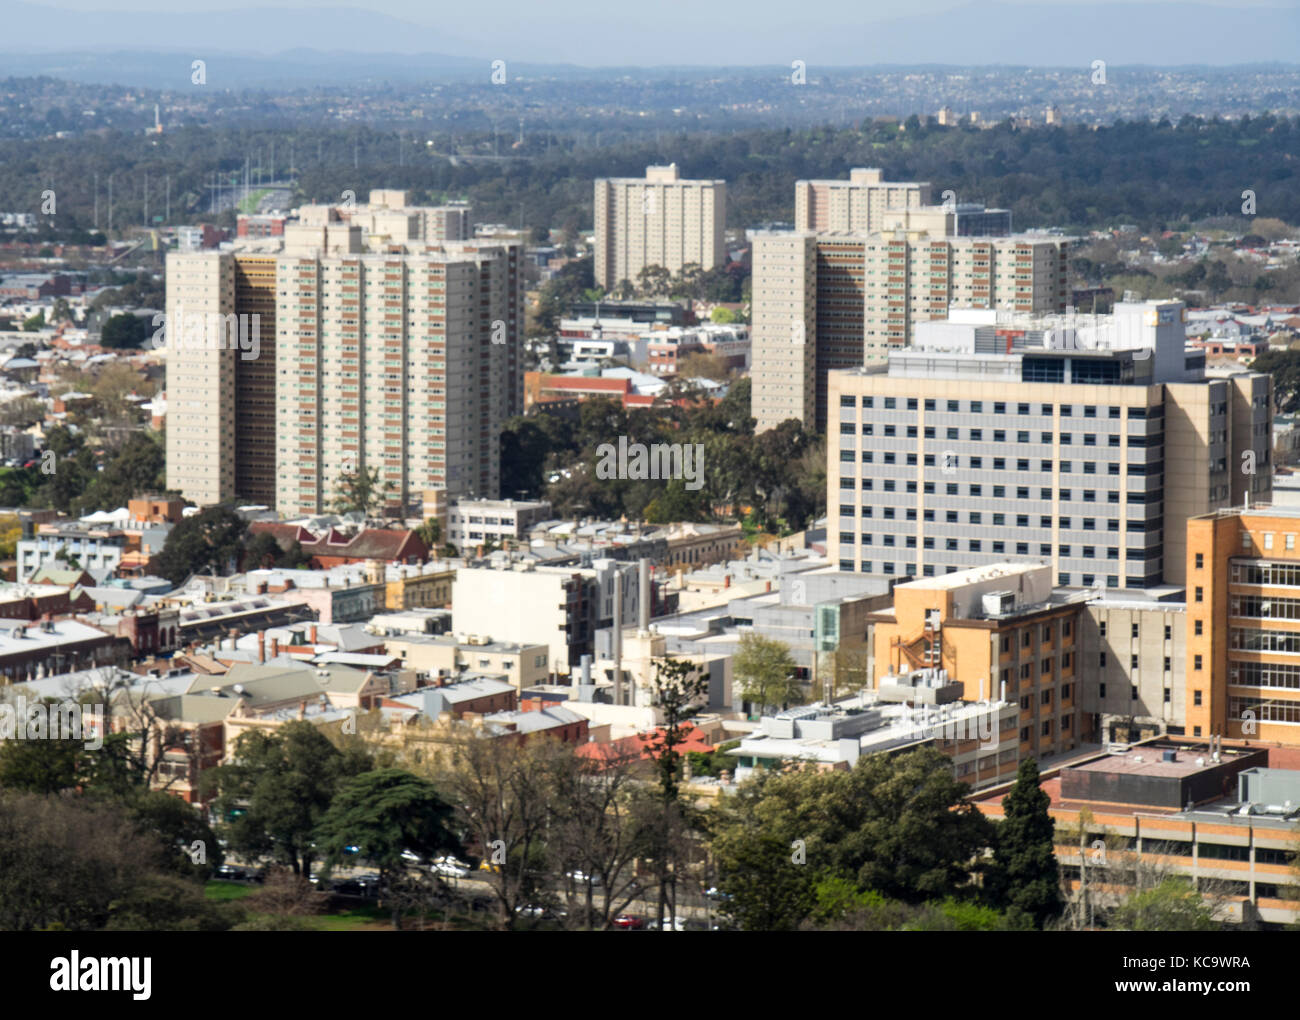 High rise public housing towers in Fitzroy, Melbourne, Victoria, Australia. - Stock Image